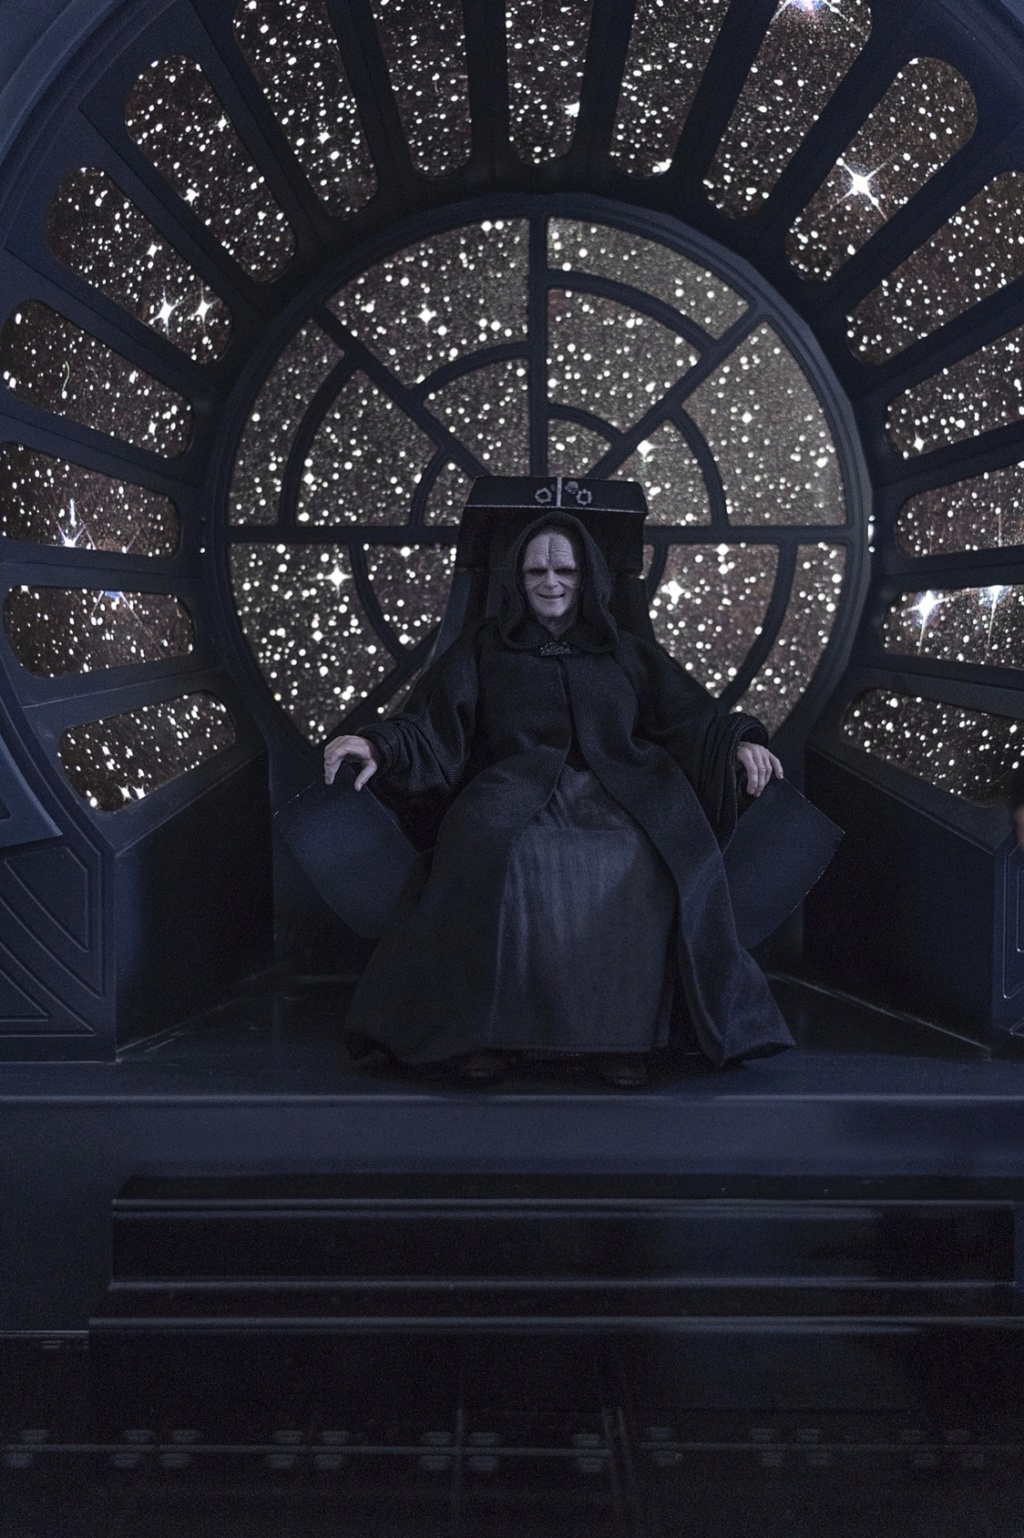 rotj - Hot Toys Star Wars Emperor Palpatine (Deluxe) Review - Page 2 1396